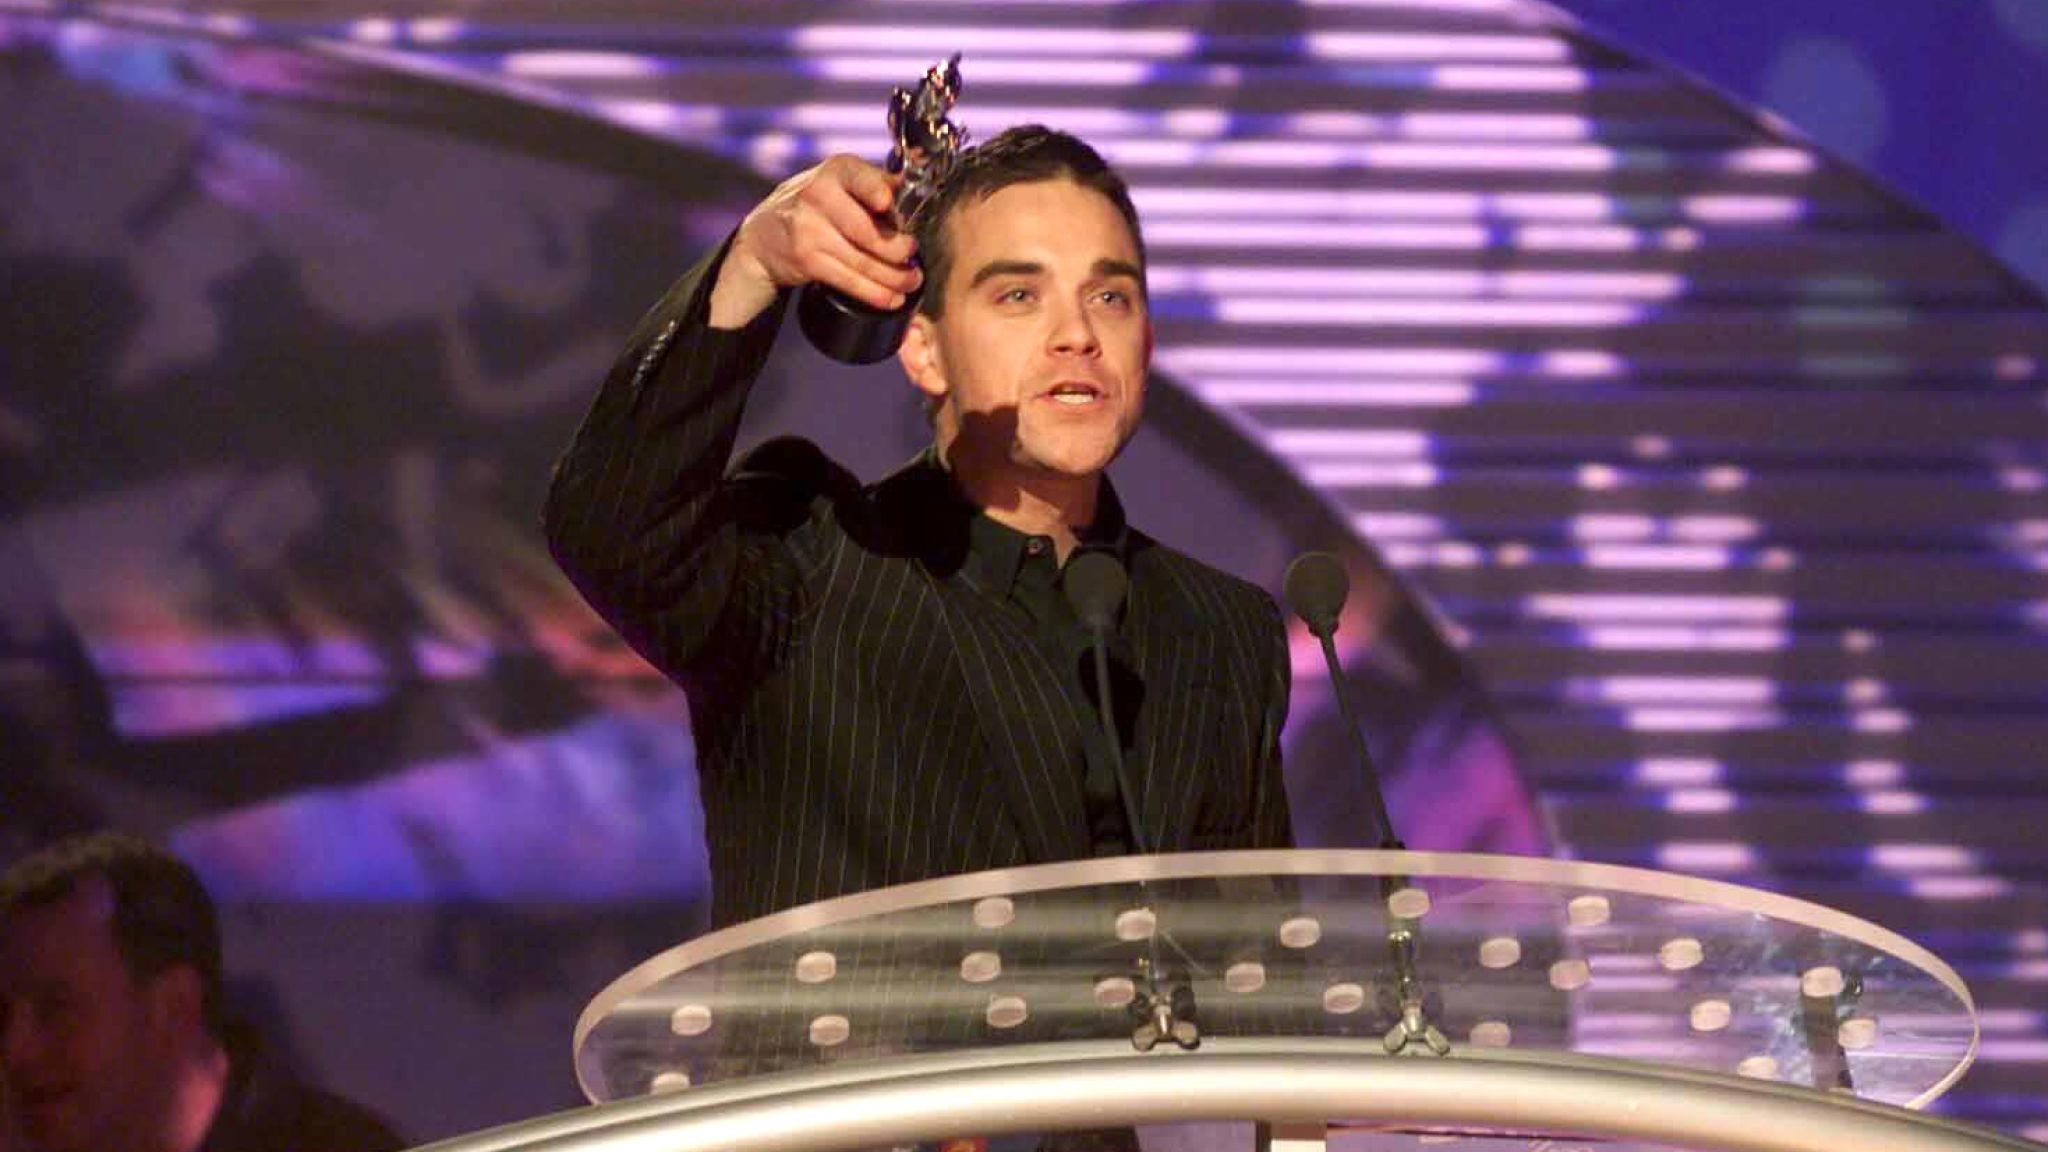 Robbie Williams in 2000. Pic: Richard Young/Shutterstock